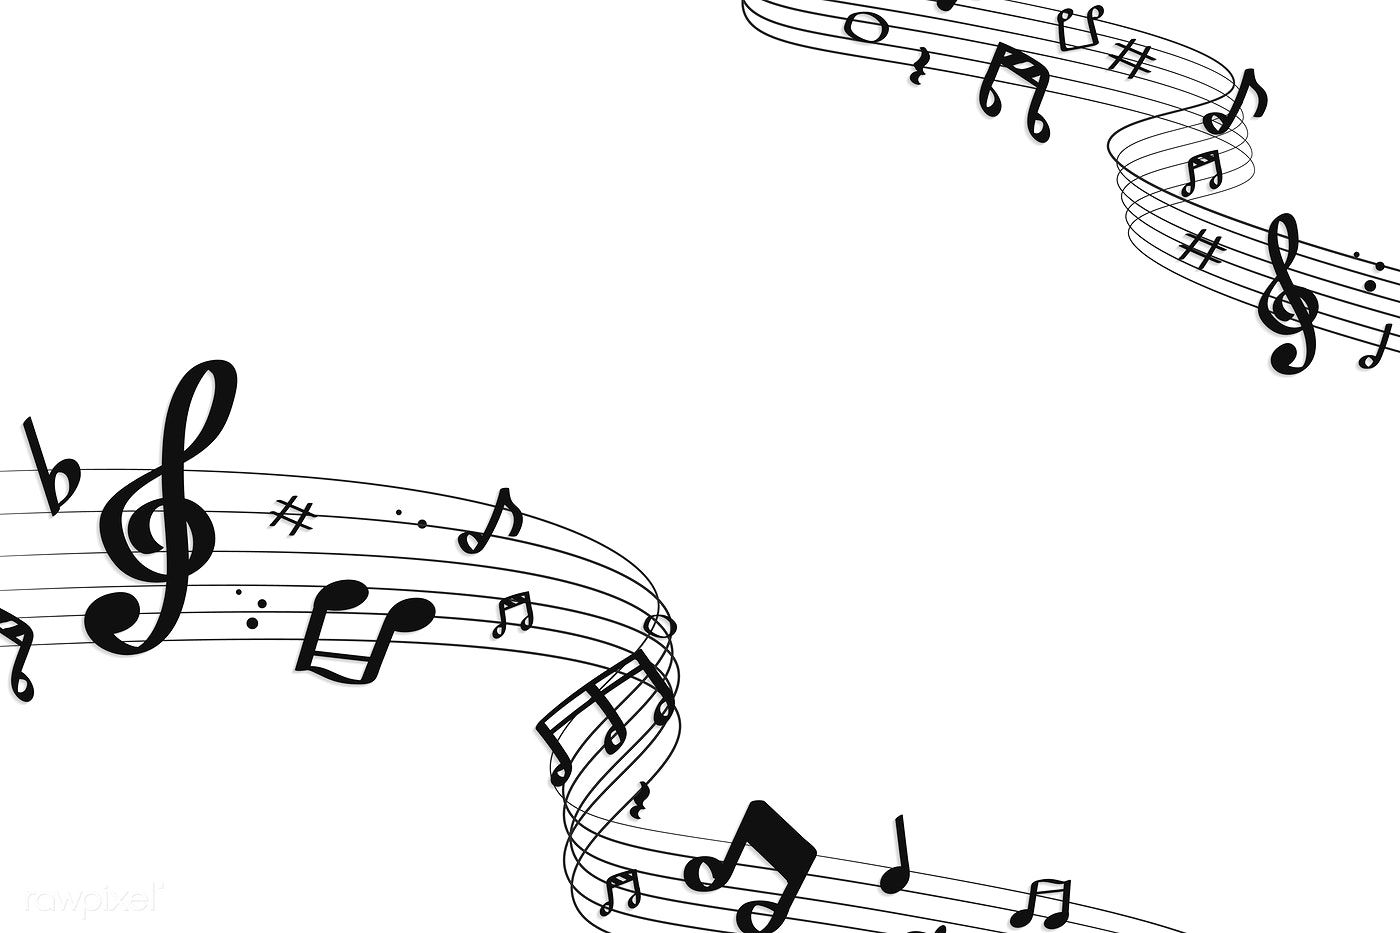 Black Flowing Music Notes On White Background Vector Free Image